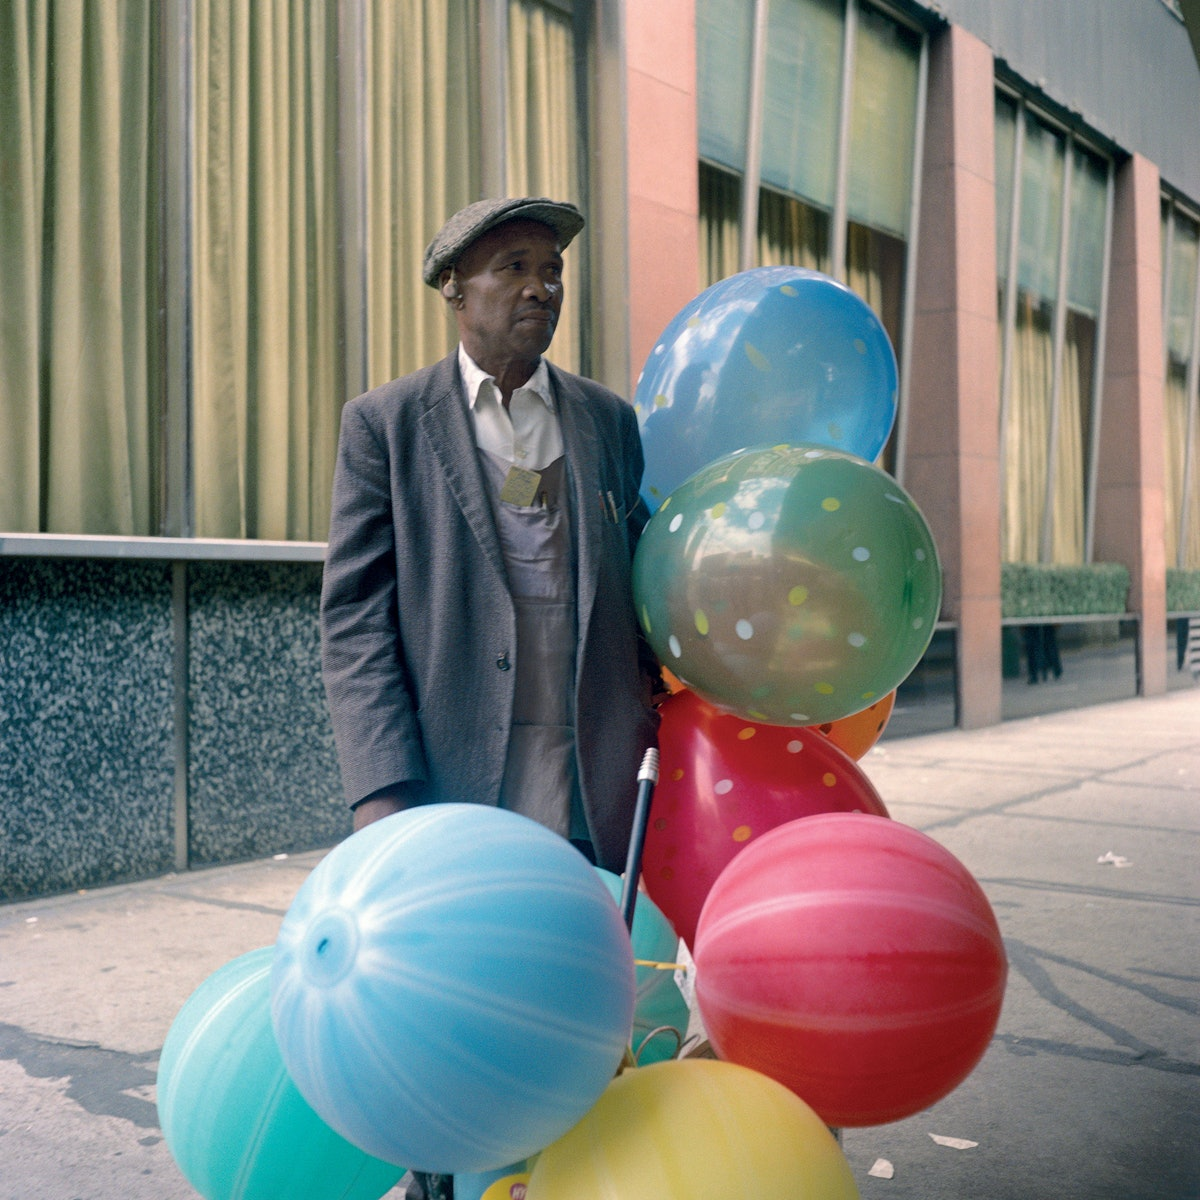 Location-and-date-unknown-(Man-with-Balloons).jpg